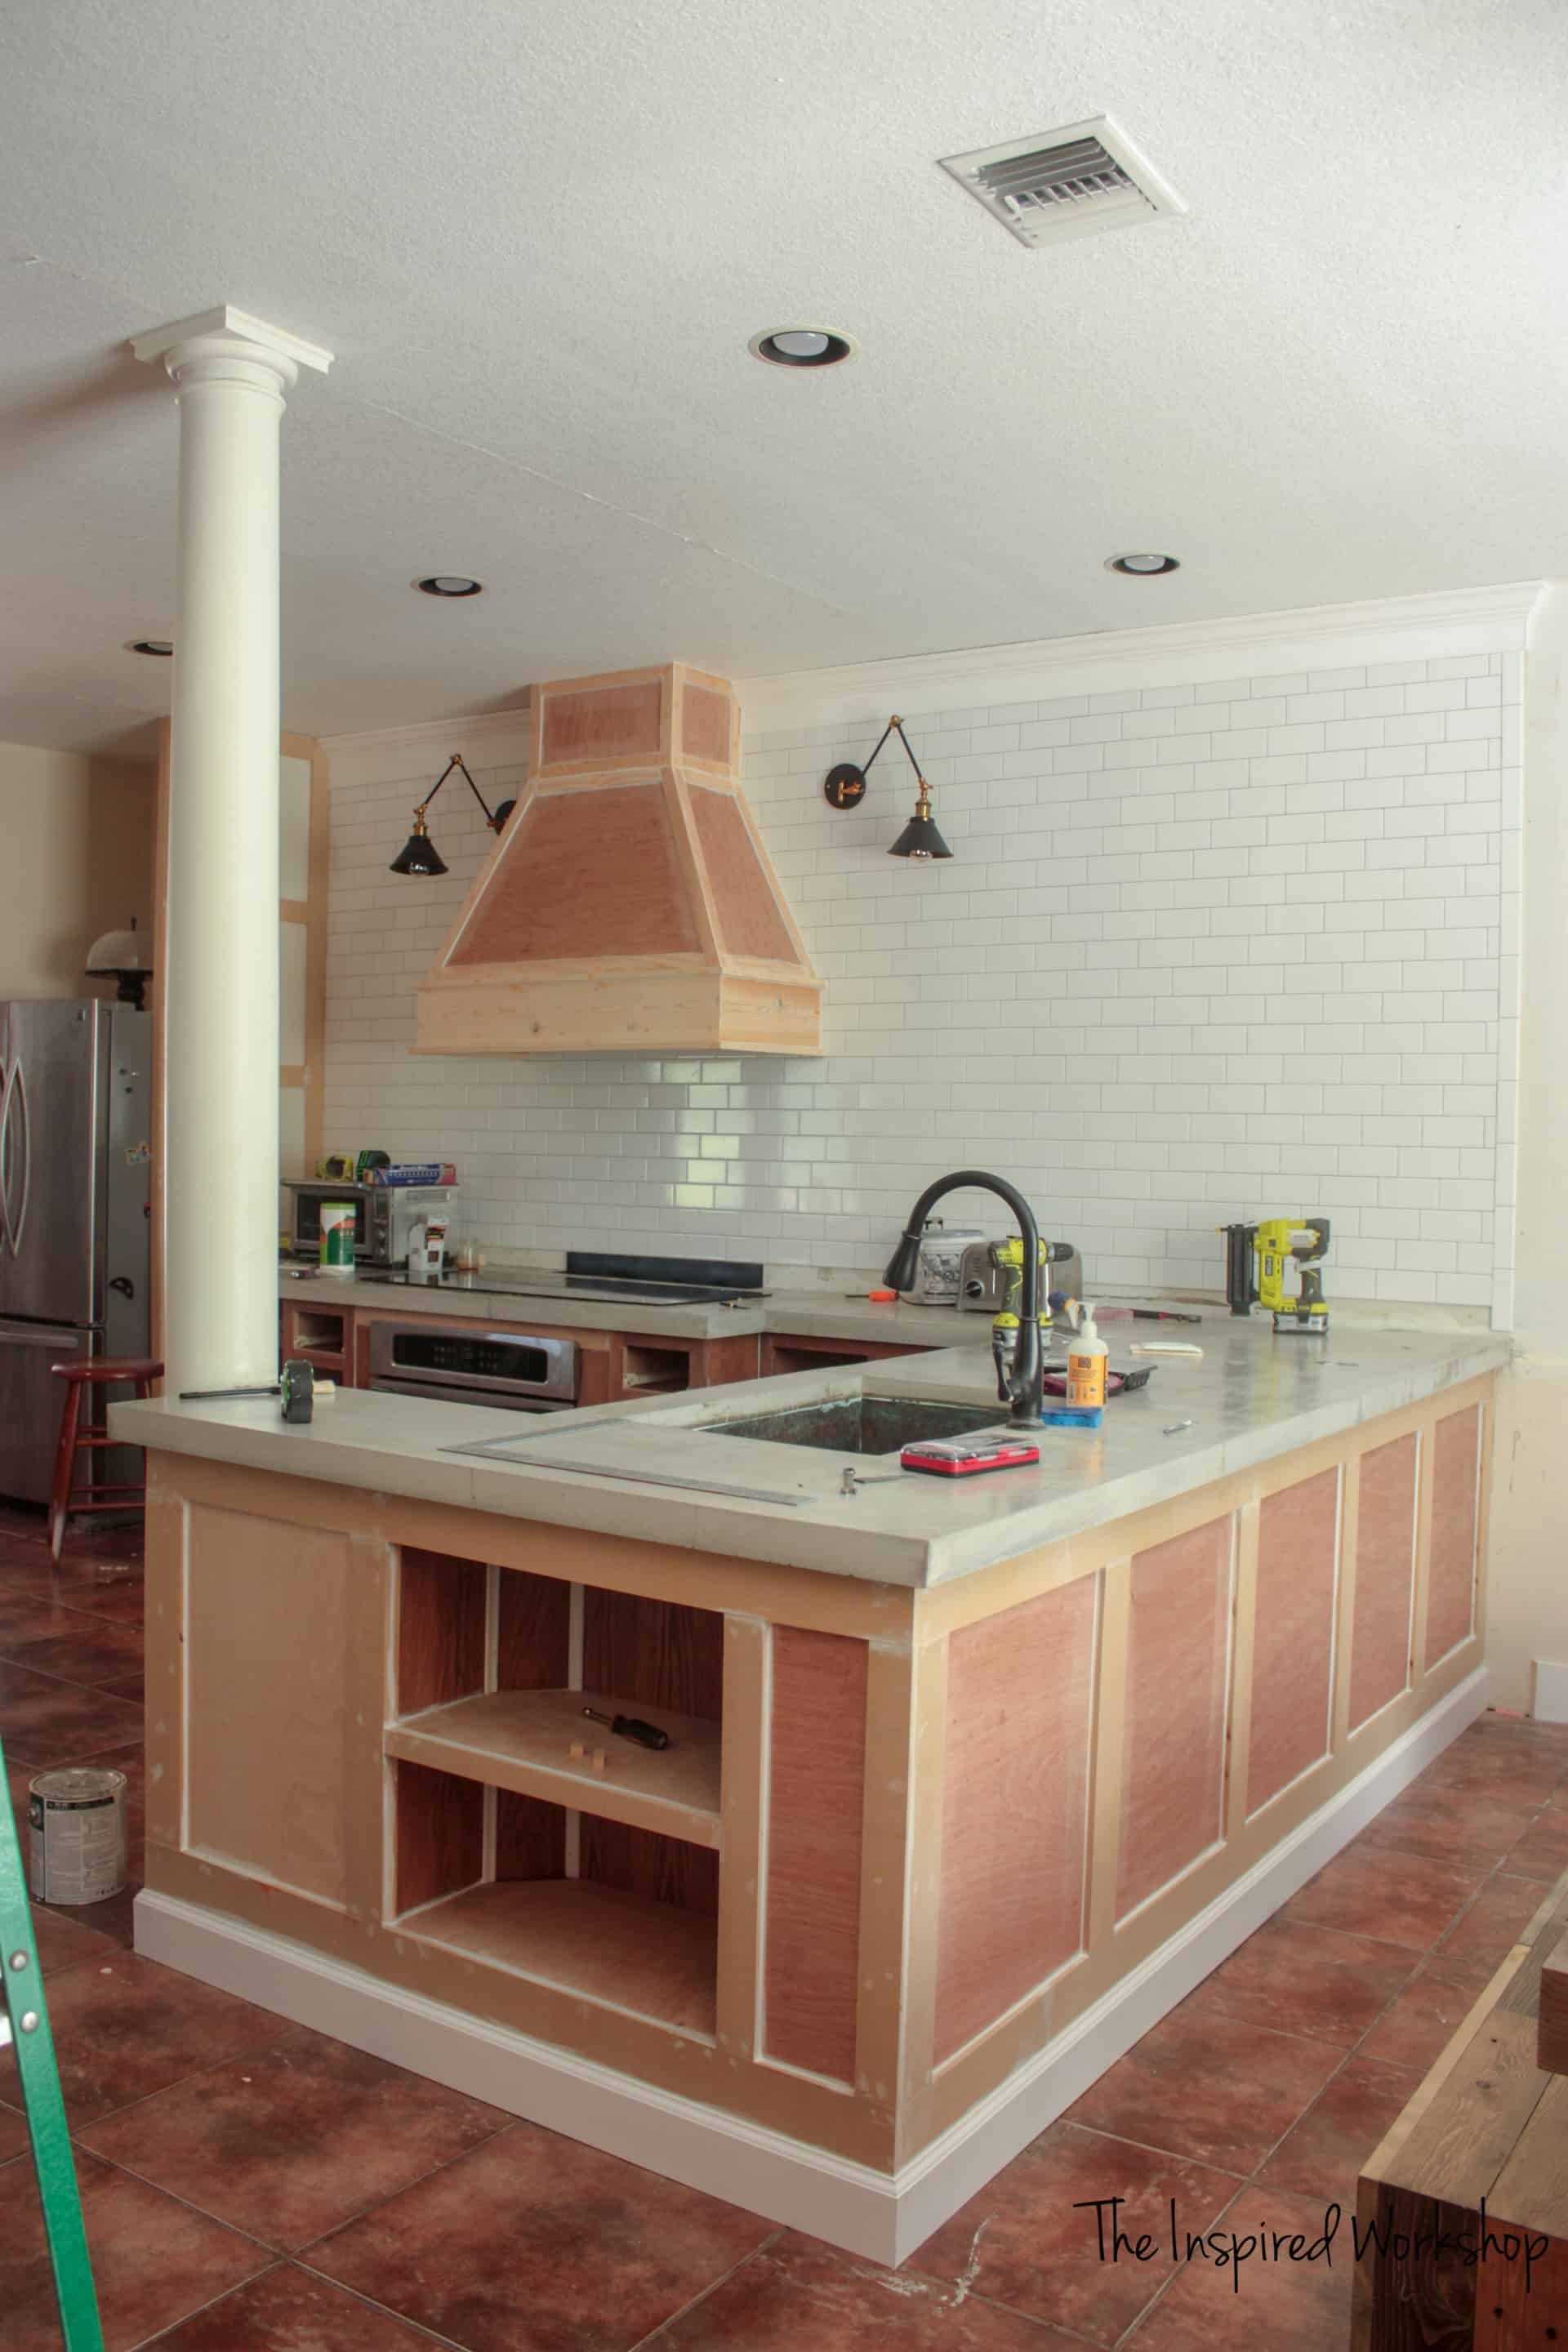 Extending the cabinets and building out the peninsula - kitchen renovation